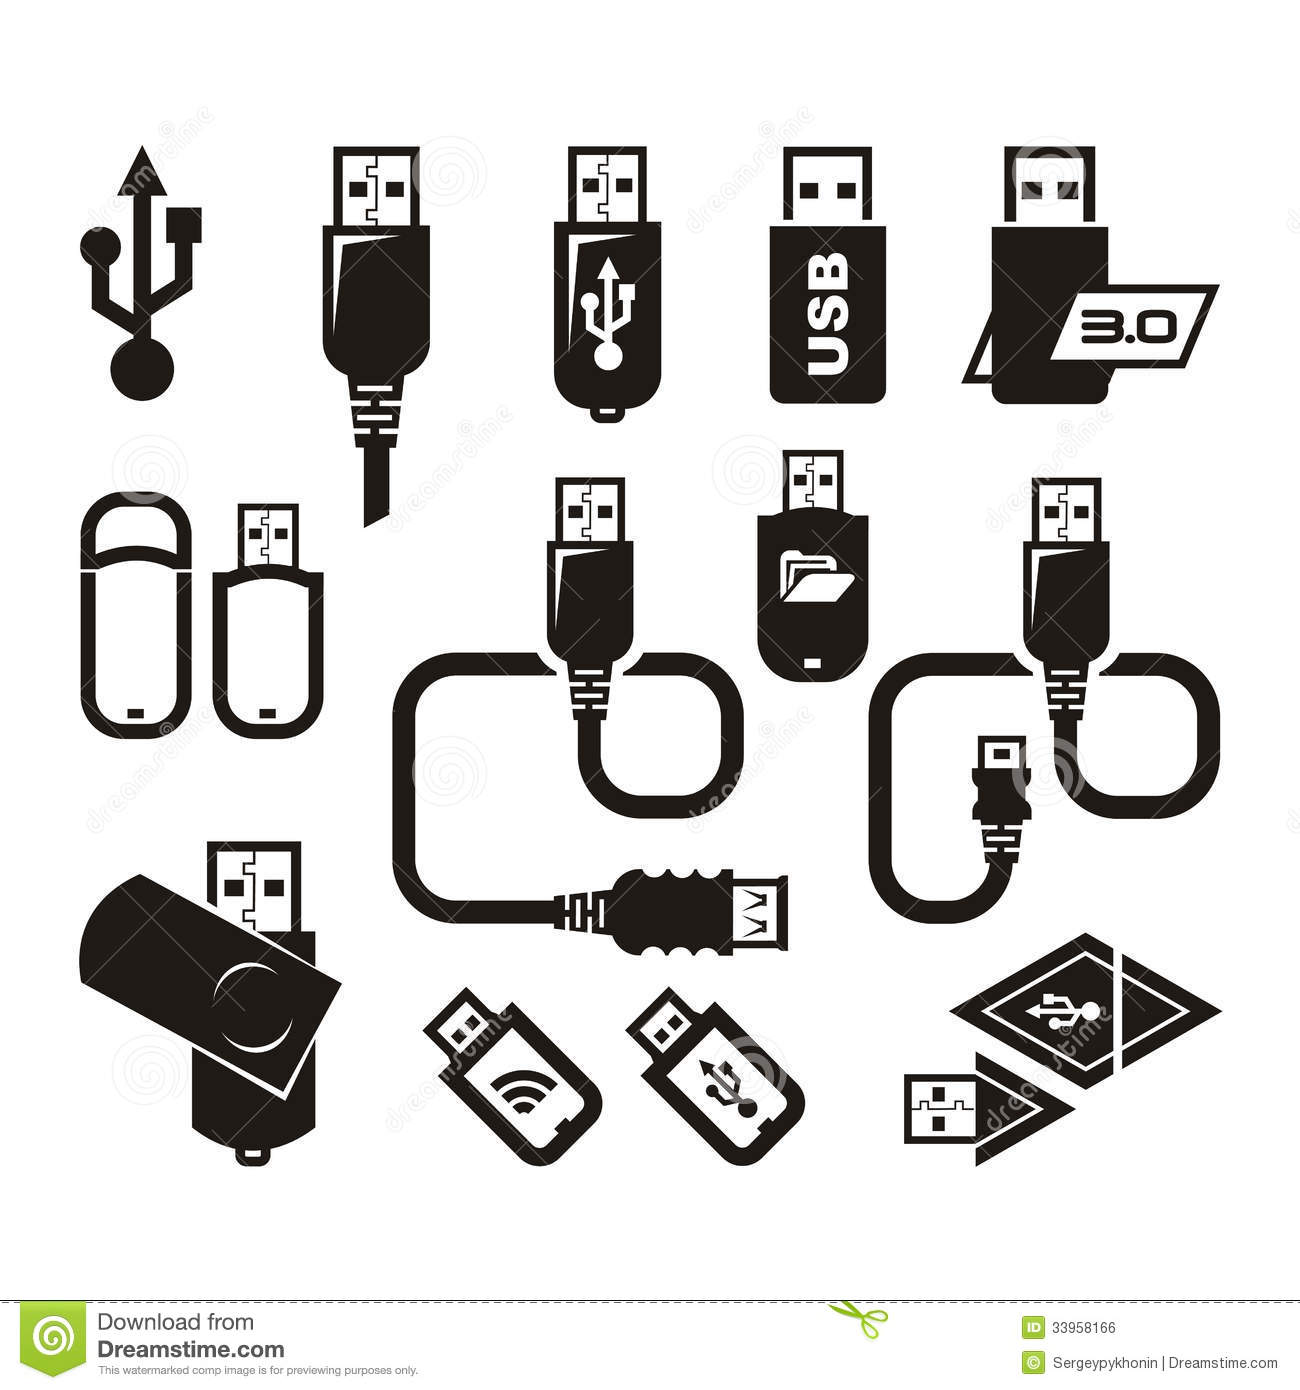 Usb Icons Vector Format Royalty Free Stock Image